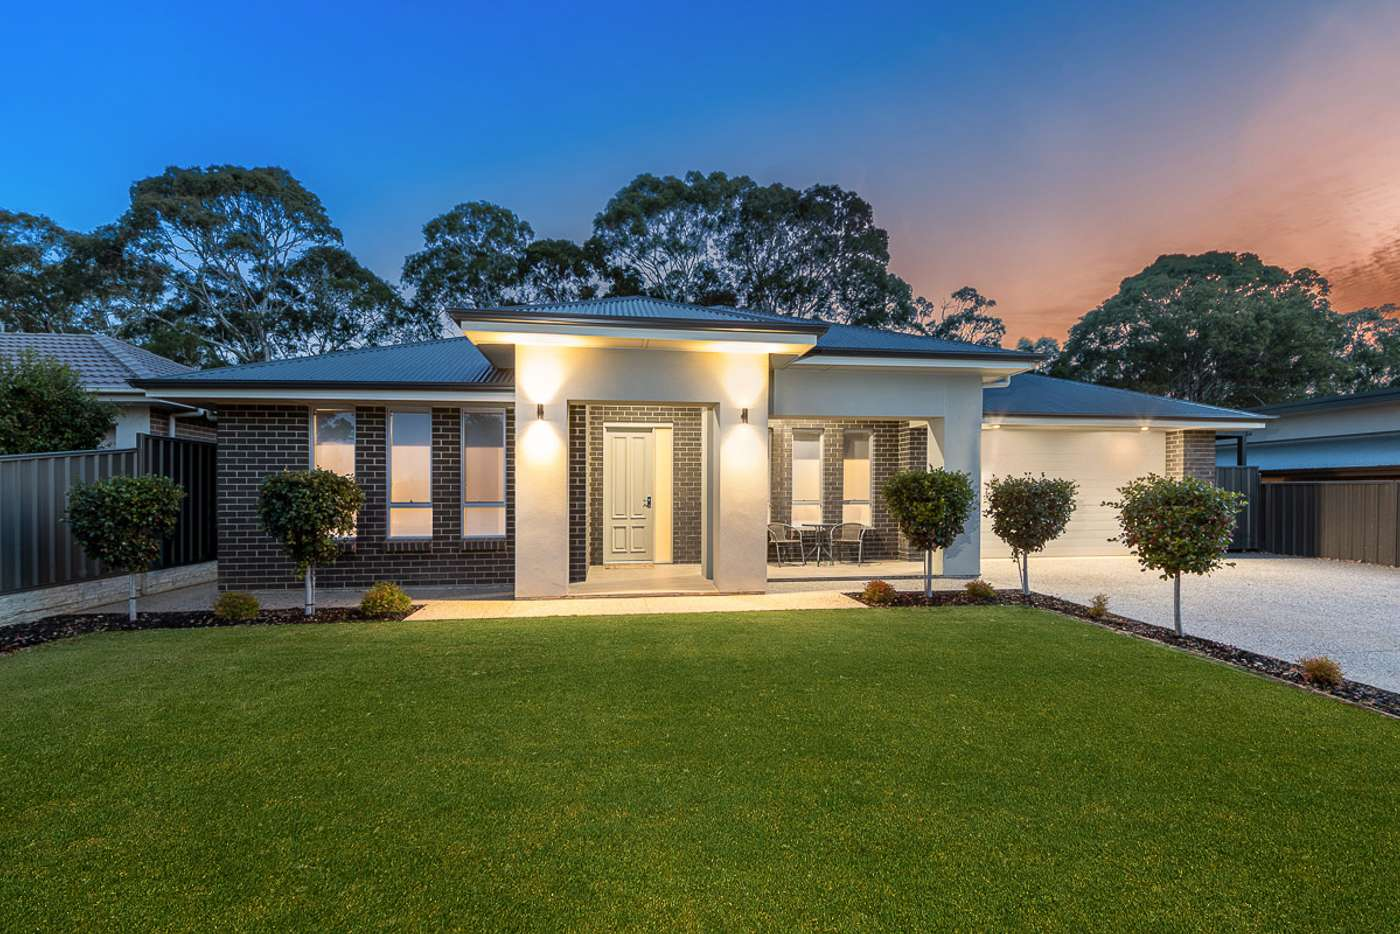 Main view of Homely house listing, 47 Bluestone Drive, Mount Barker SA 5251